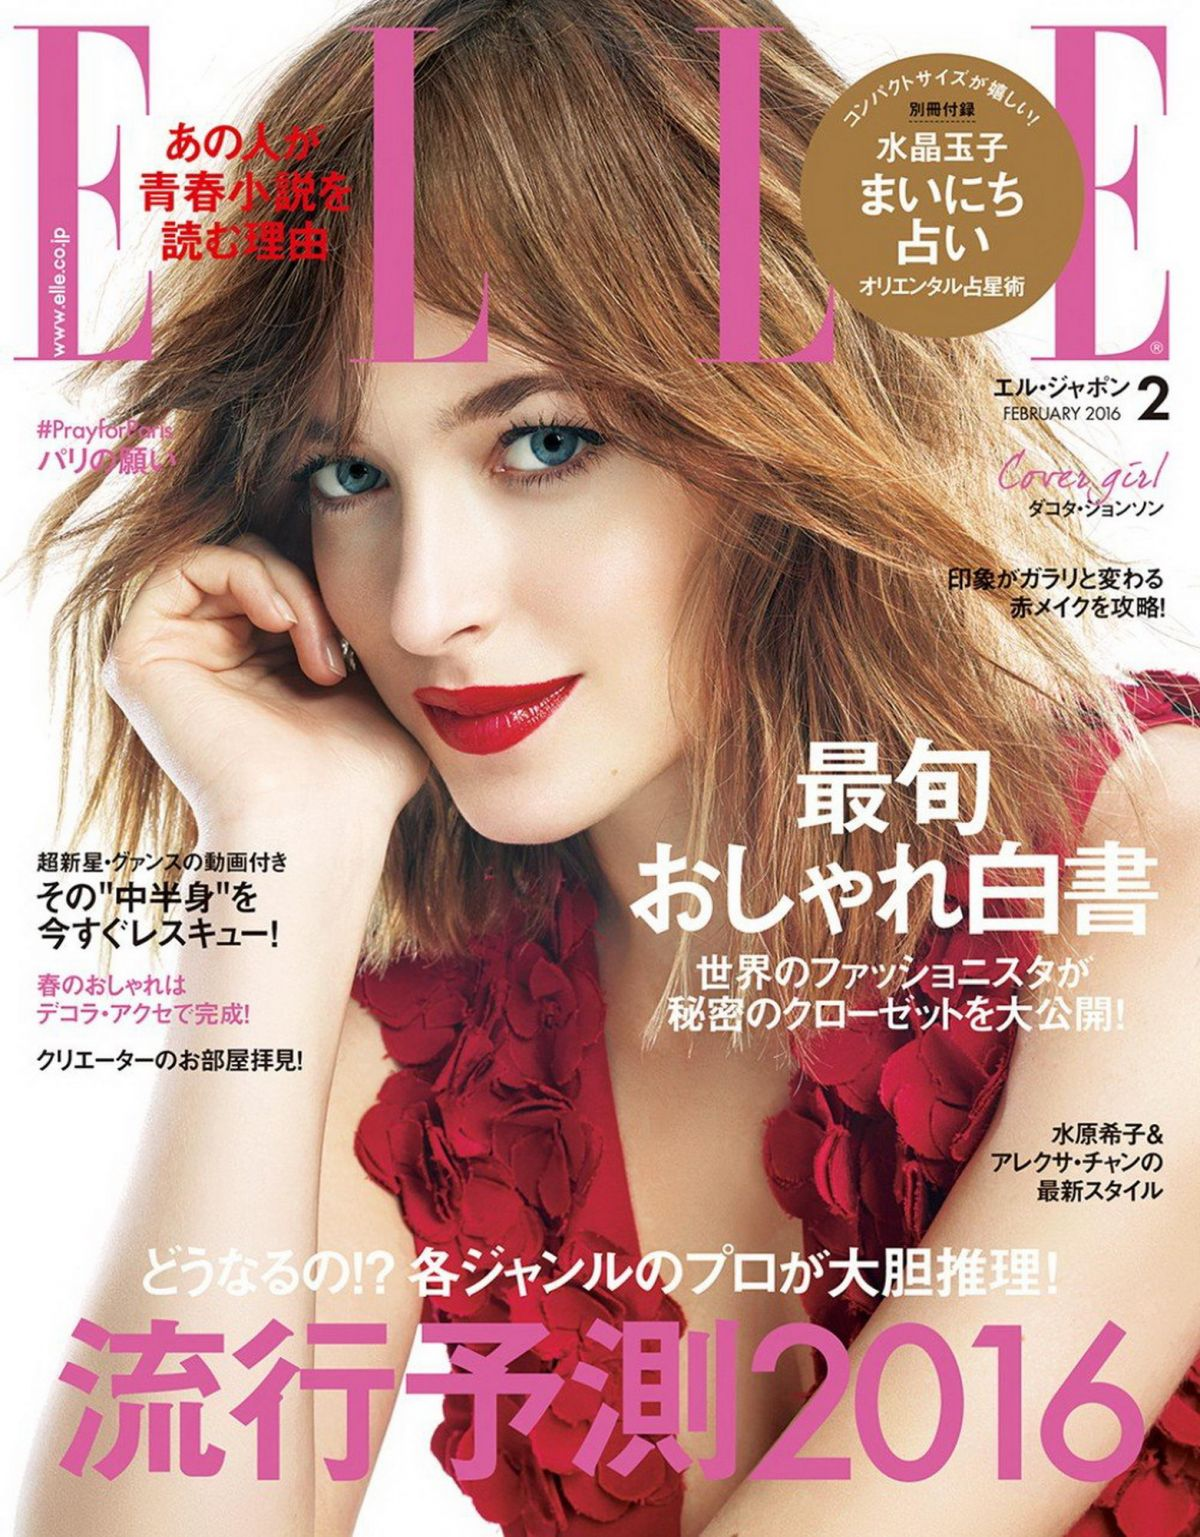 DAKOTA JOHNSON in Elle Magazine, Japan February 2016 Issue